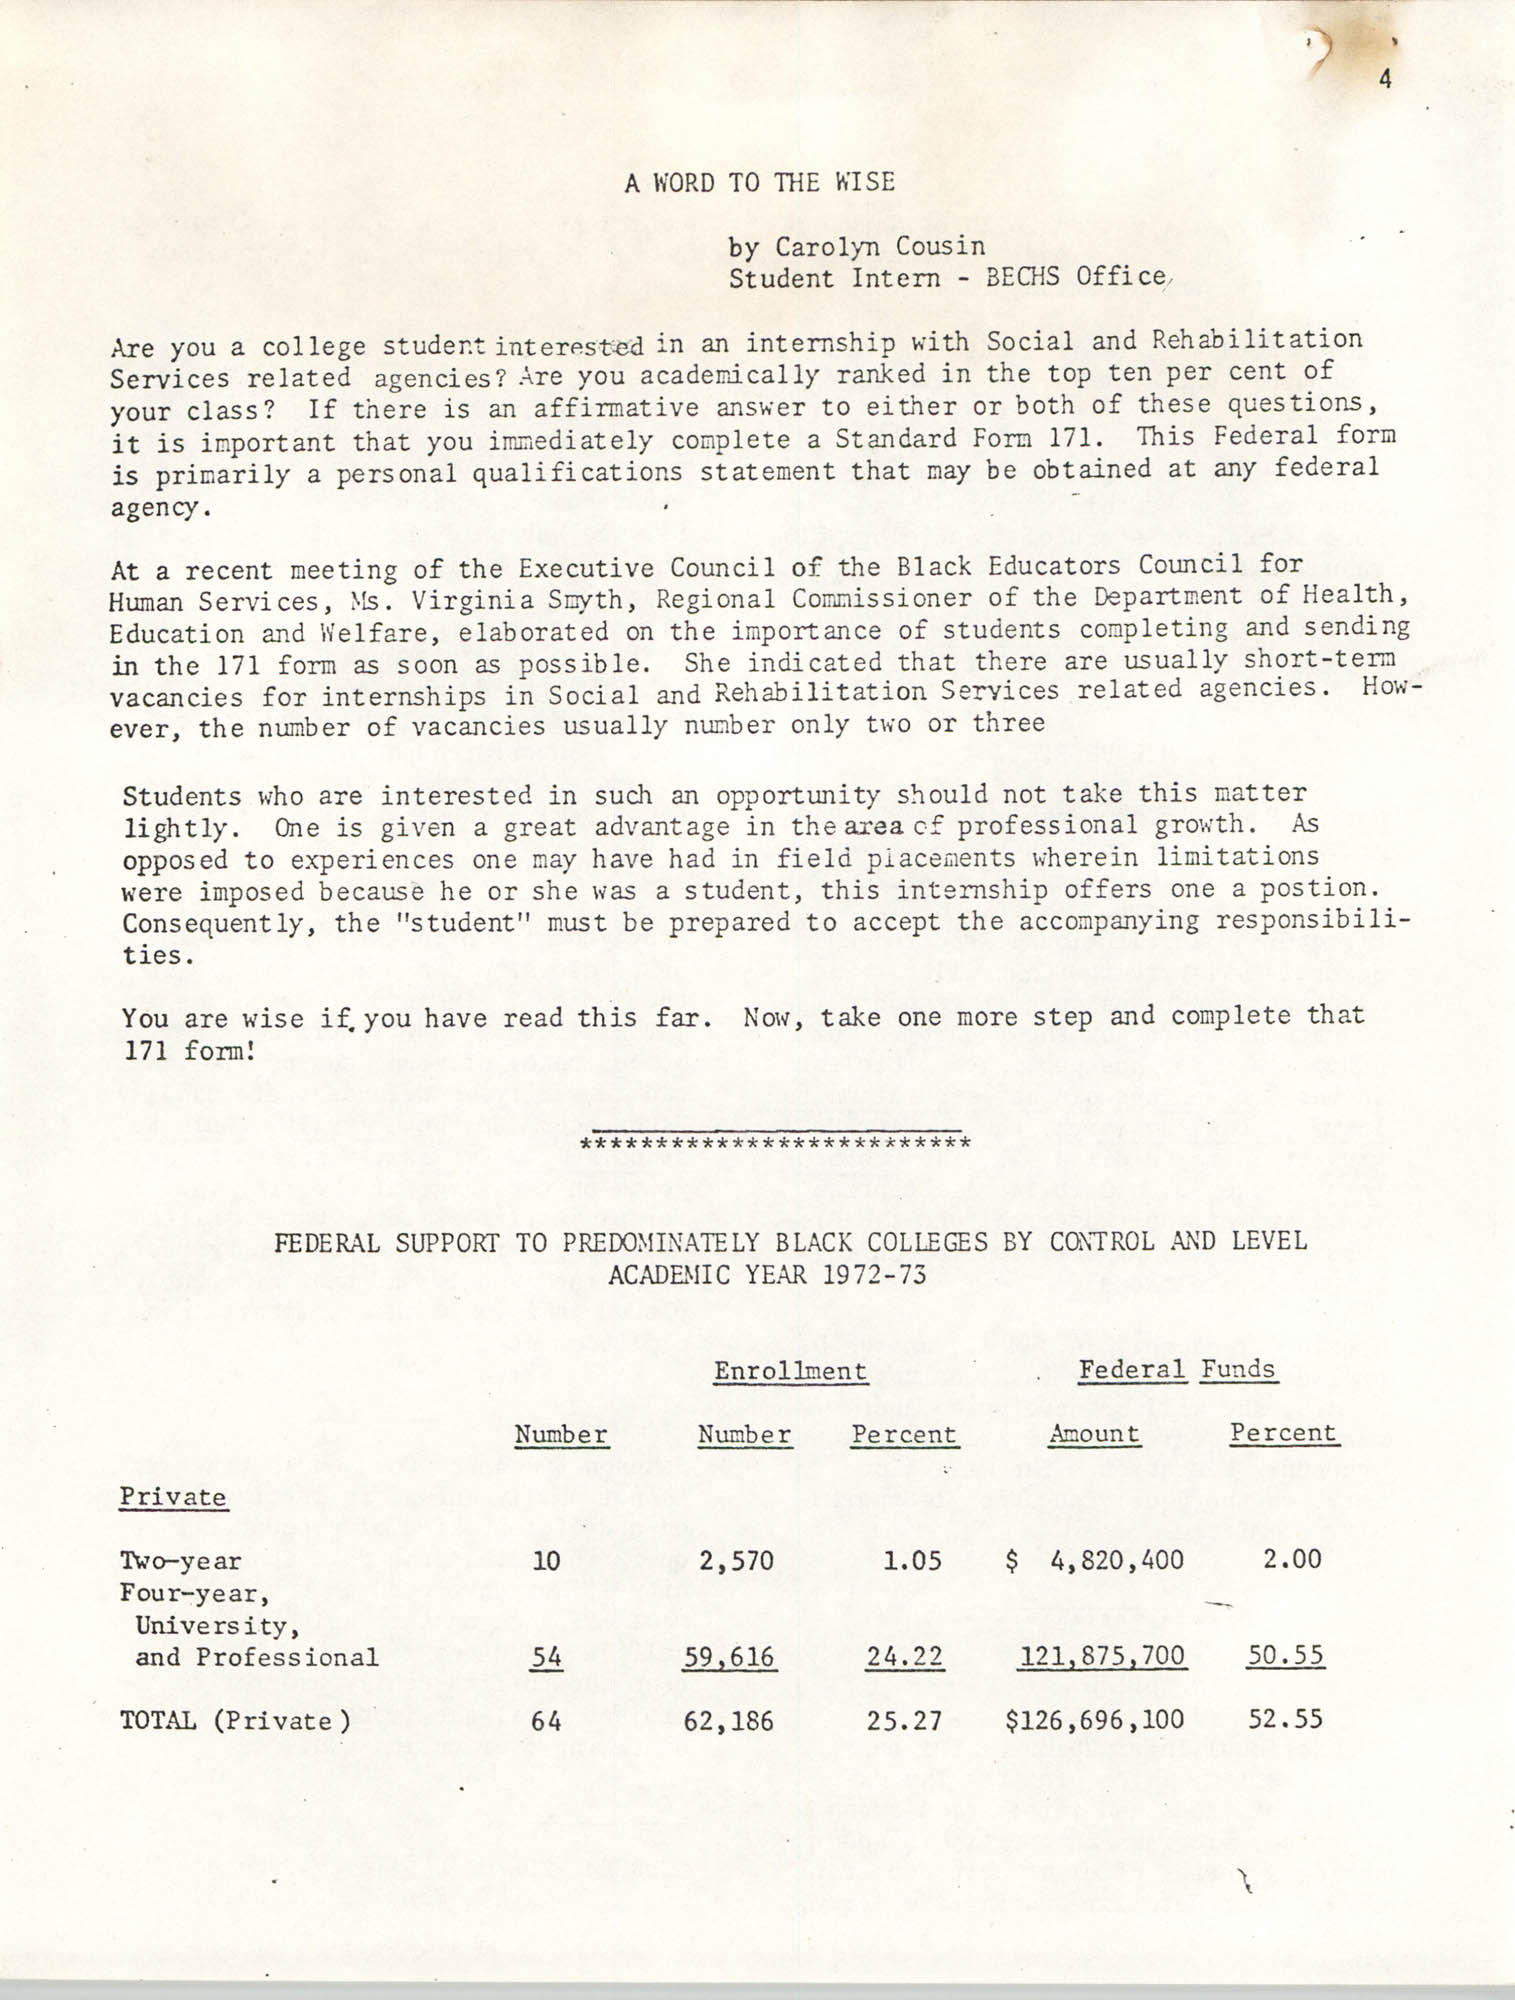 SHARE, Volume II, Number 3, March 1974, Page 4